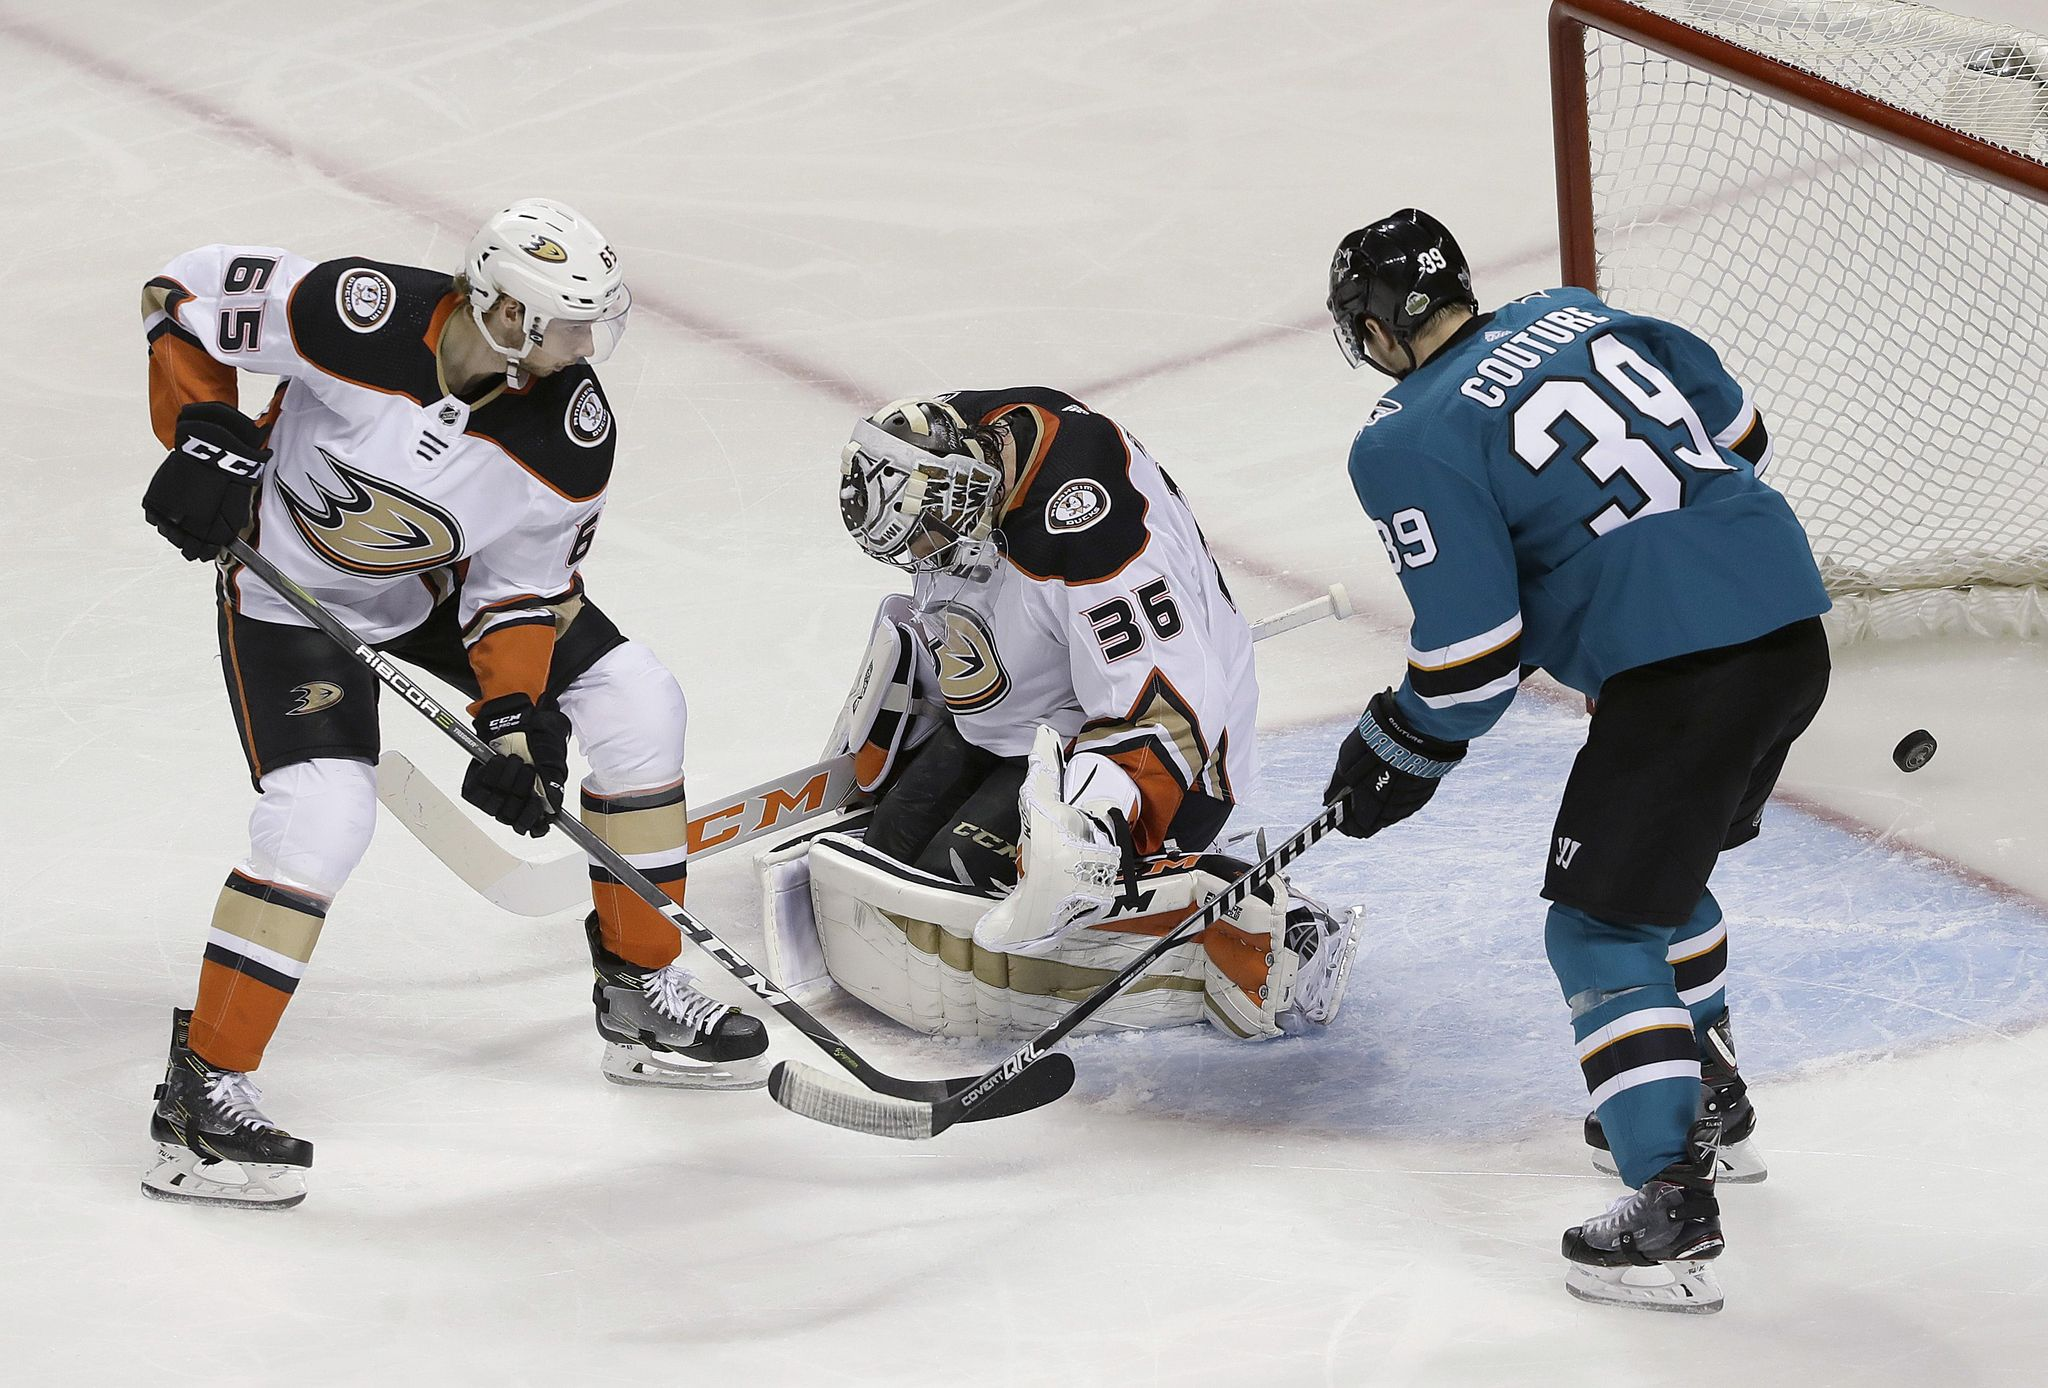 Ducks_sharks_hockey_69174_s2048x1388